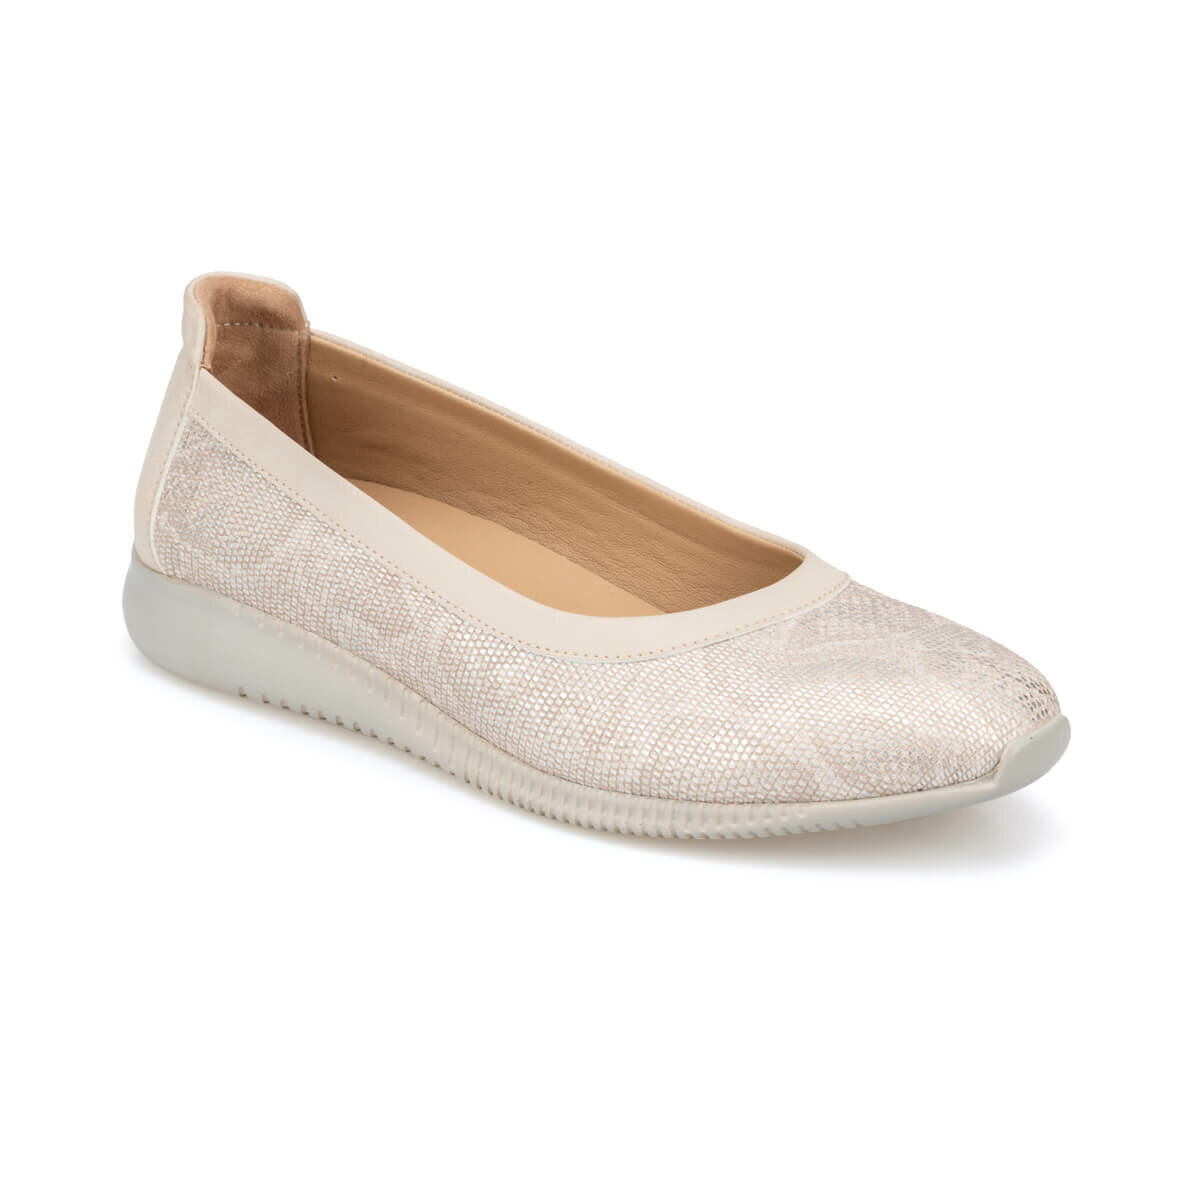 FLO 91.150655.Z Mink Women 'S Shoes Polaris